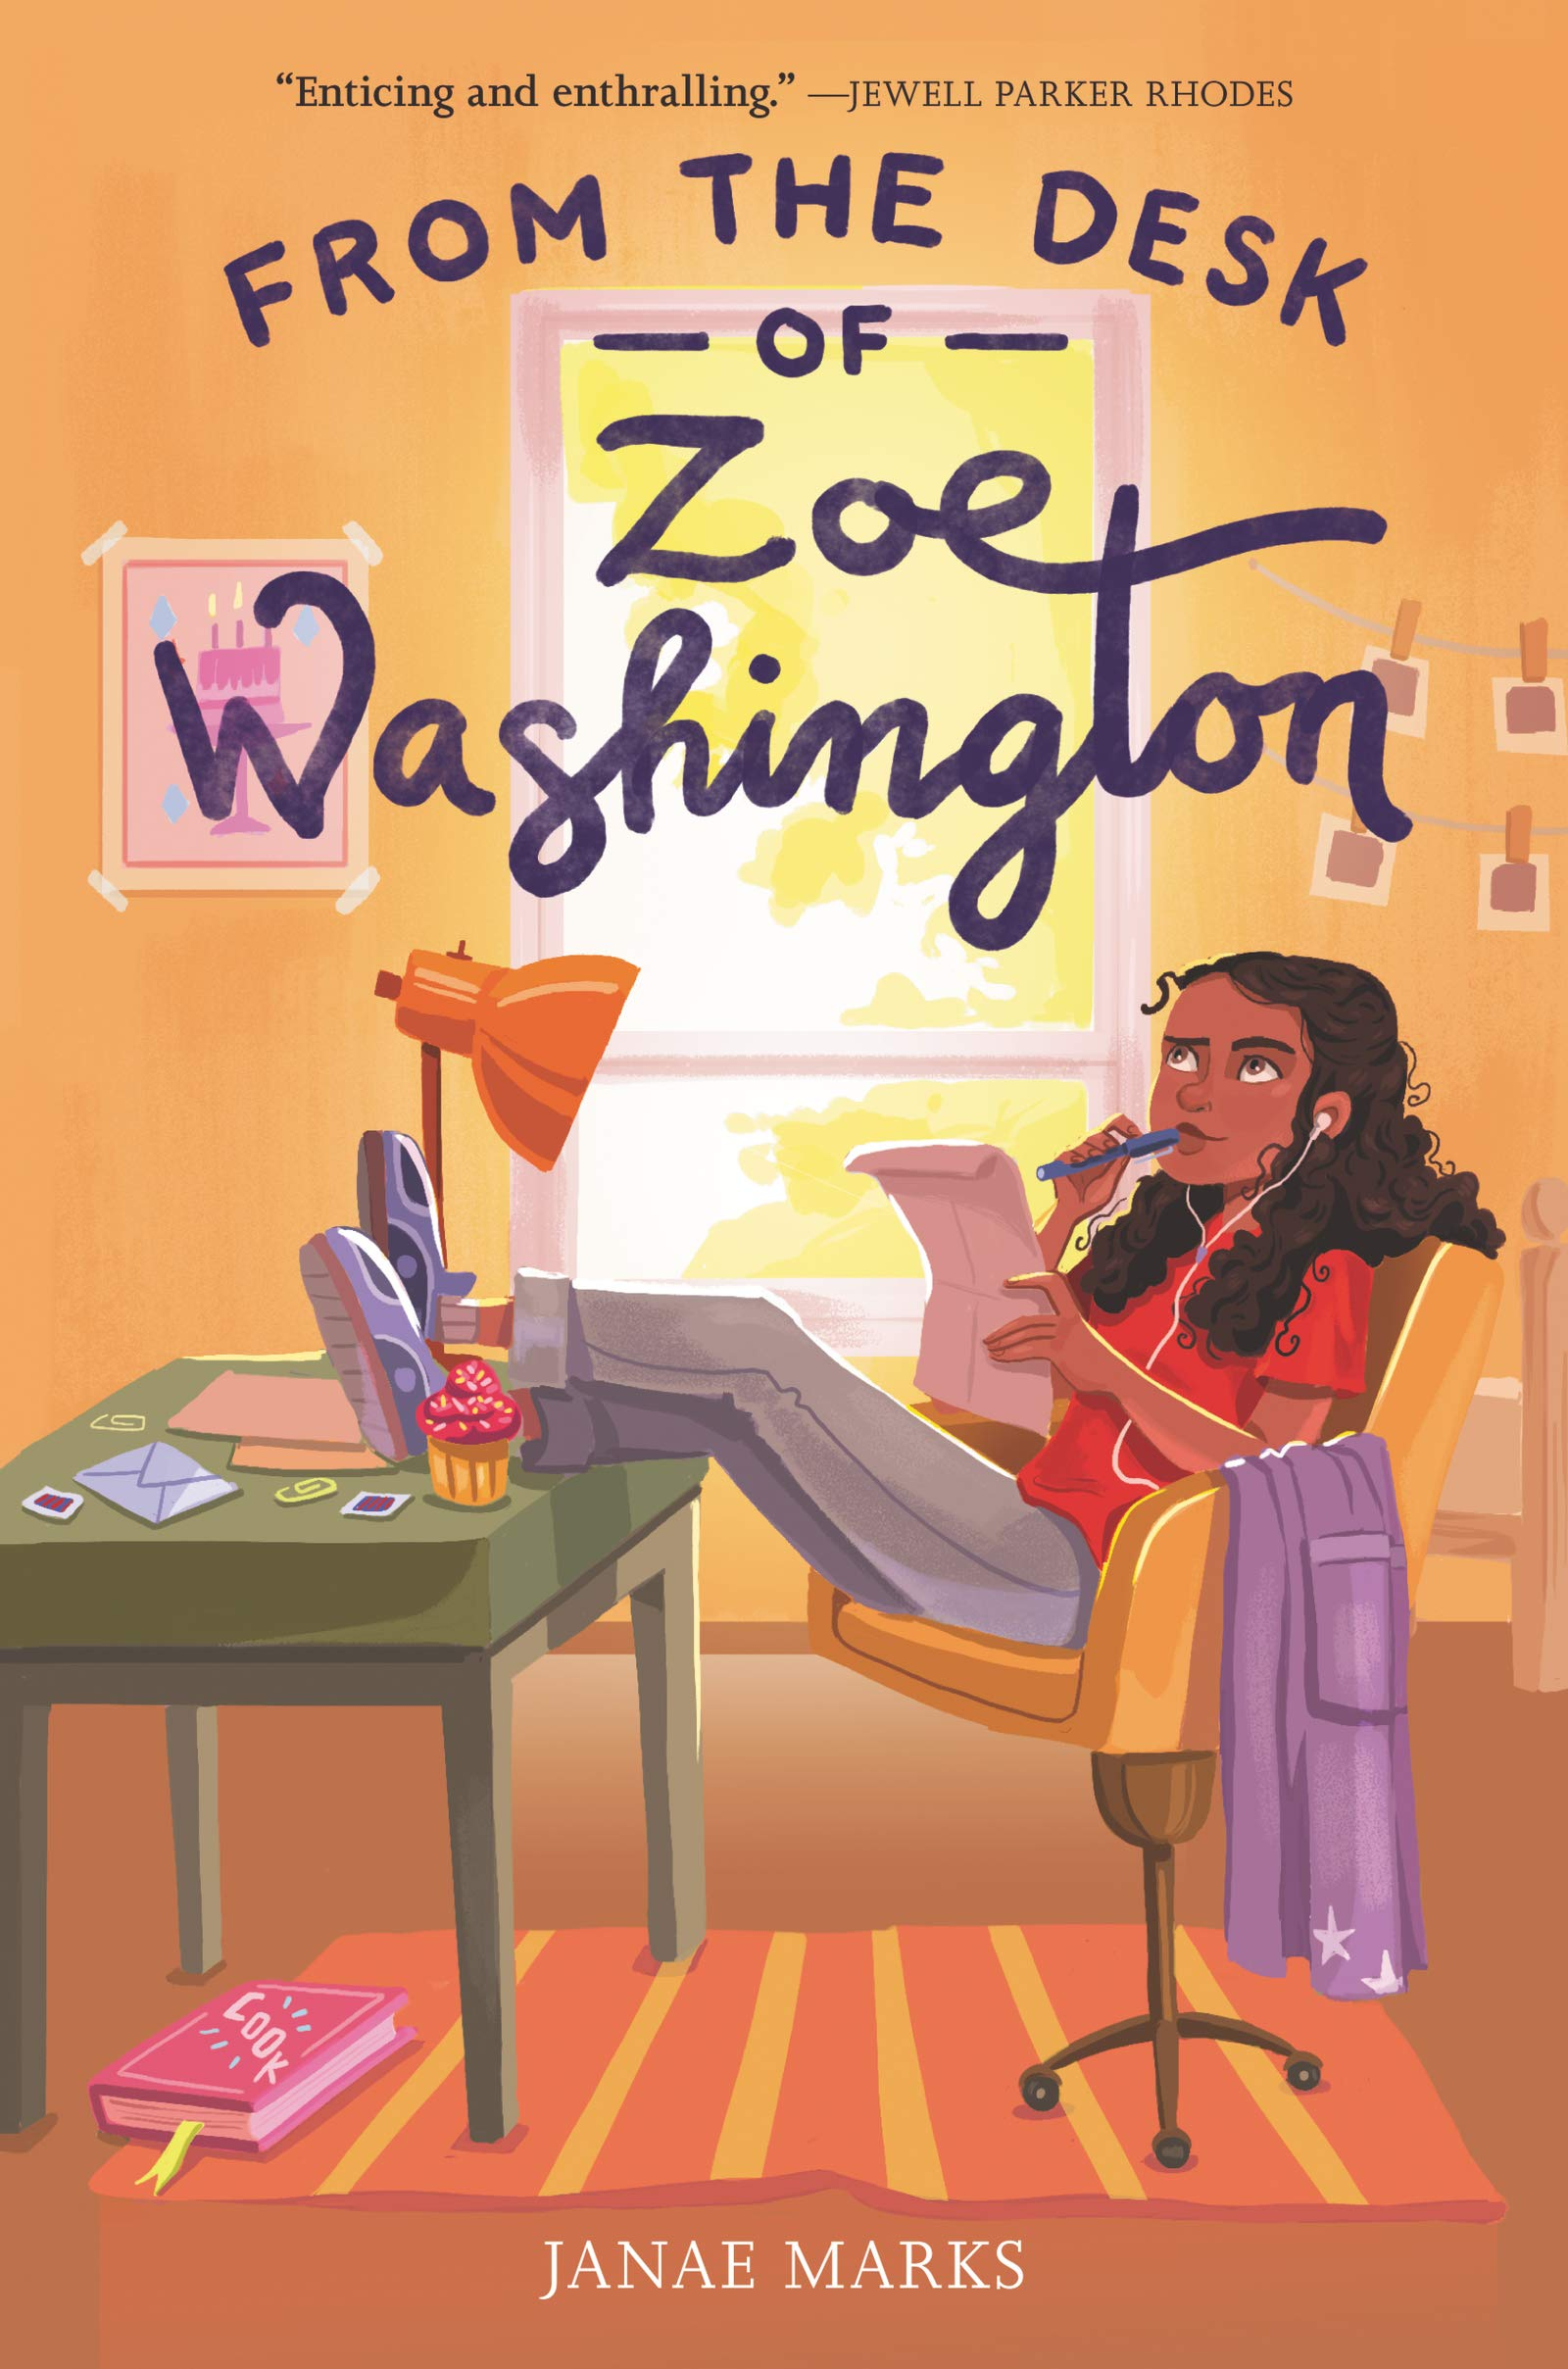 From the Desk of Zoe Washington book cover.